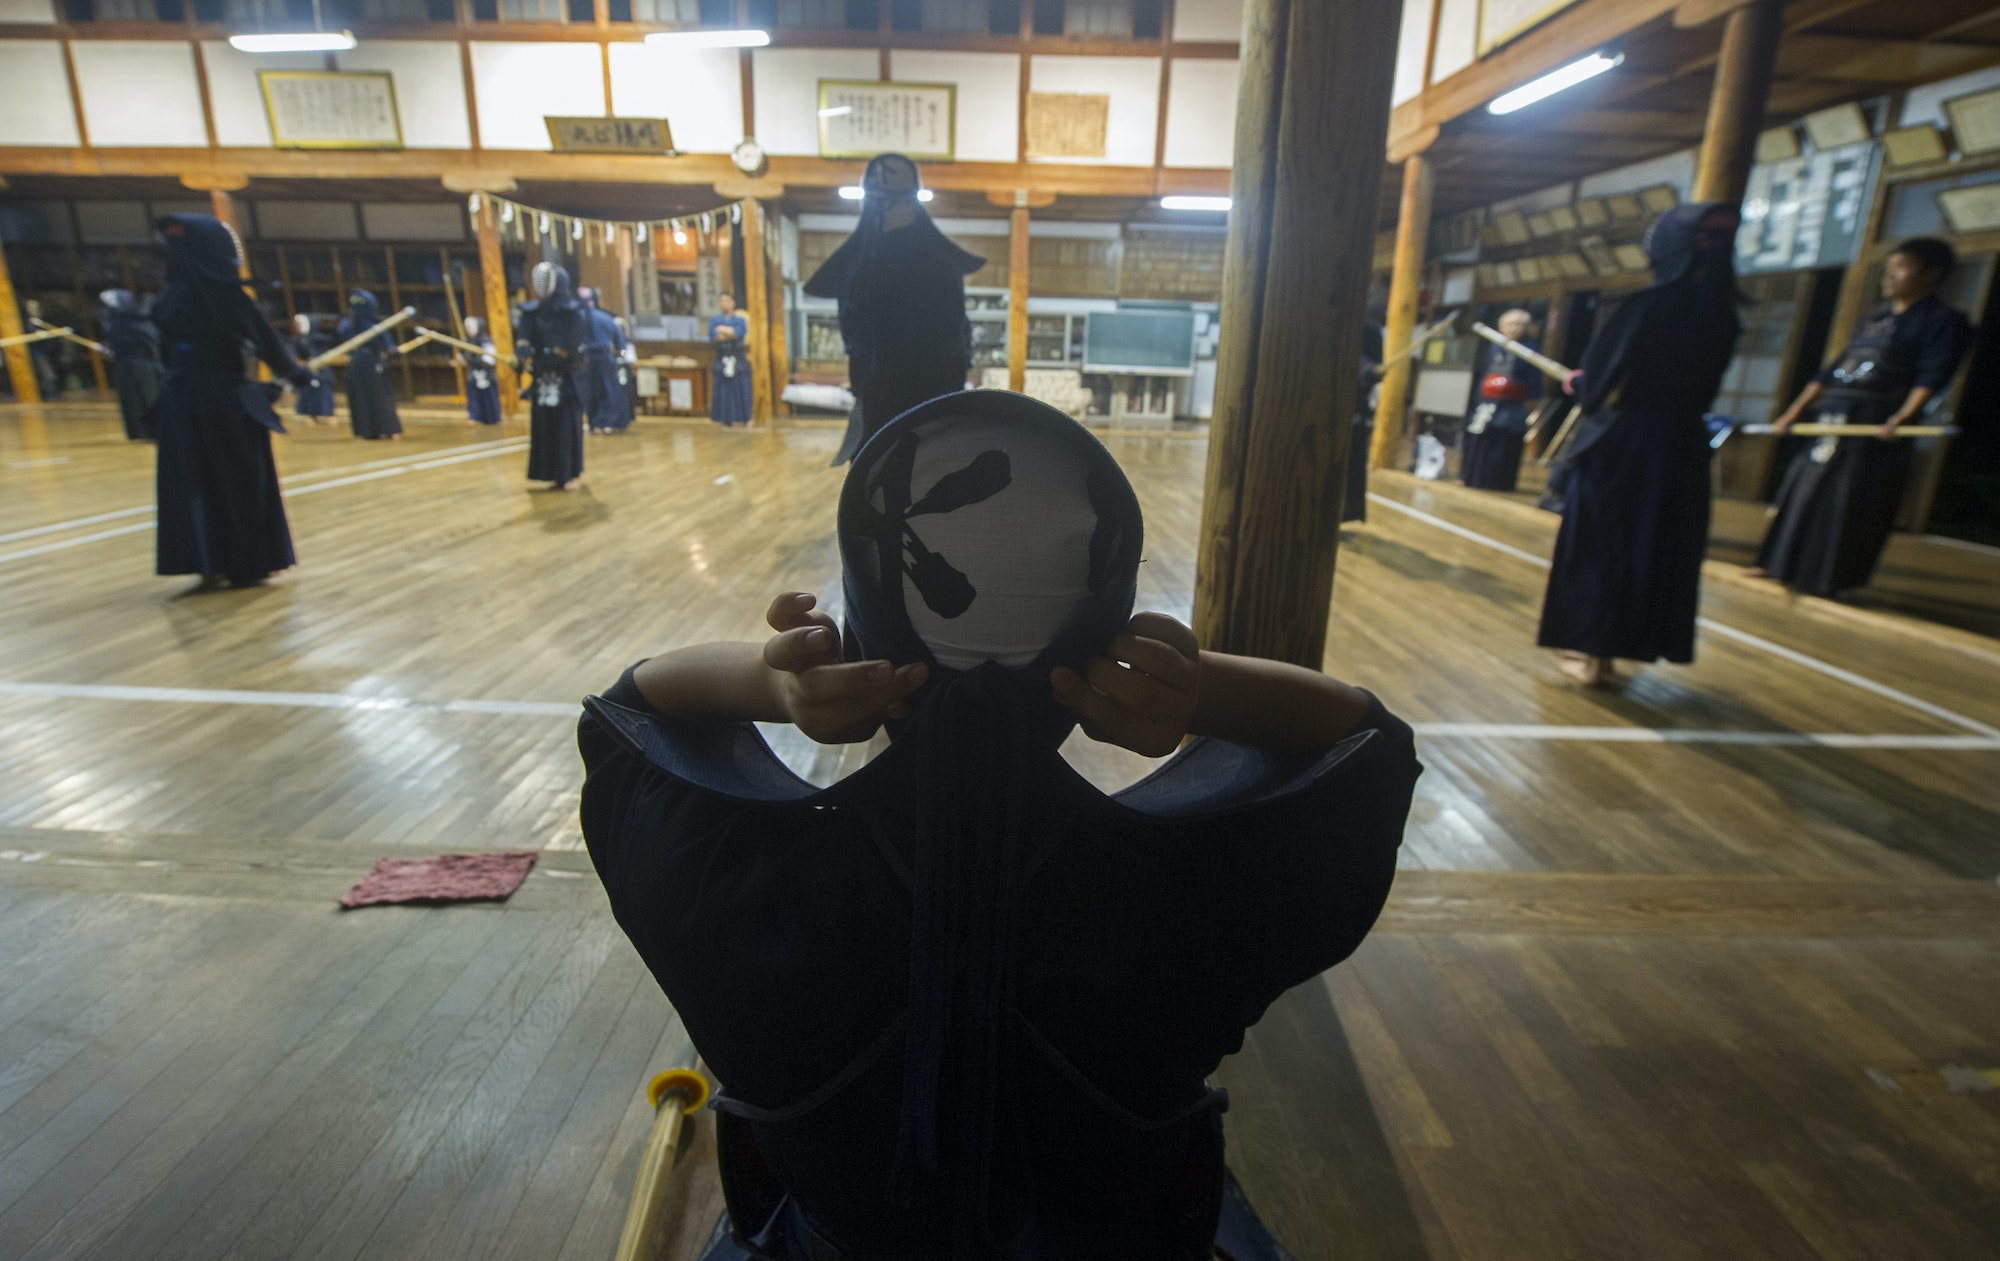 Local children practice kendo swordsmanship at a community center in Japan's Fukushima prefecture.